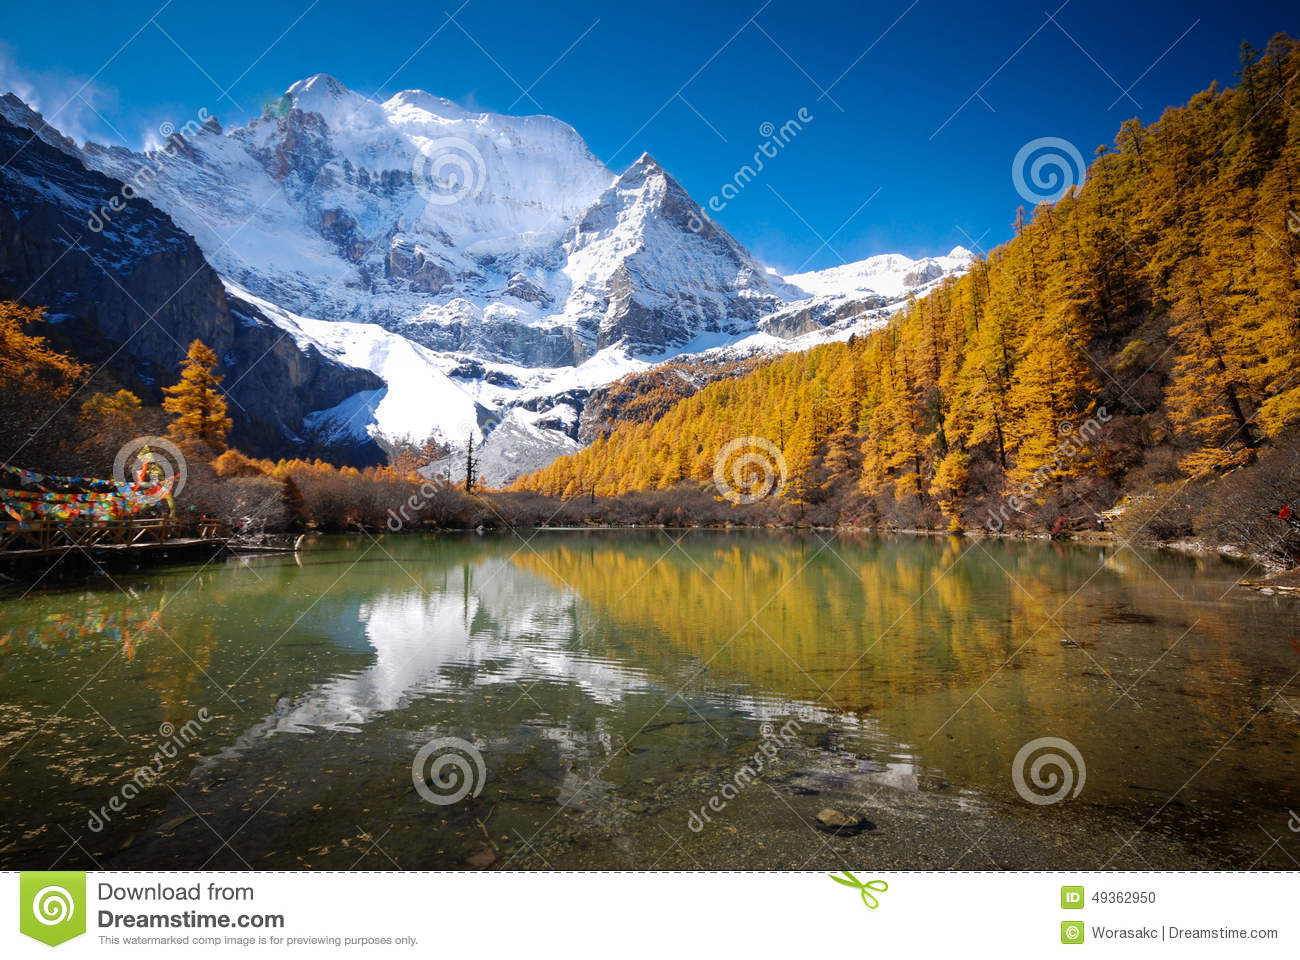 Yading Nature Reserve China Stock Photo - Image: 49362950